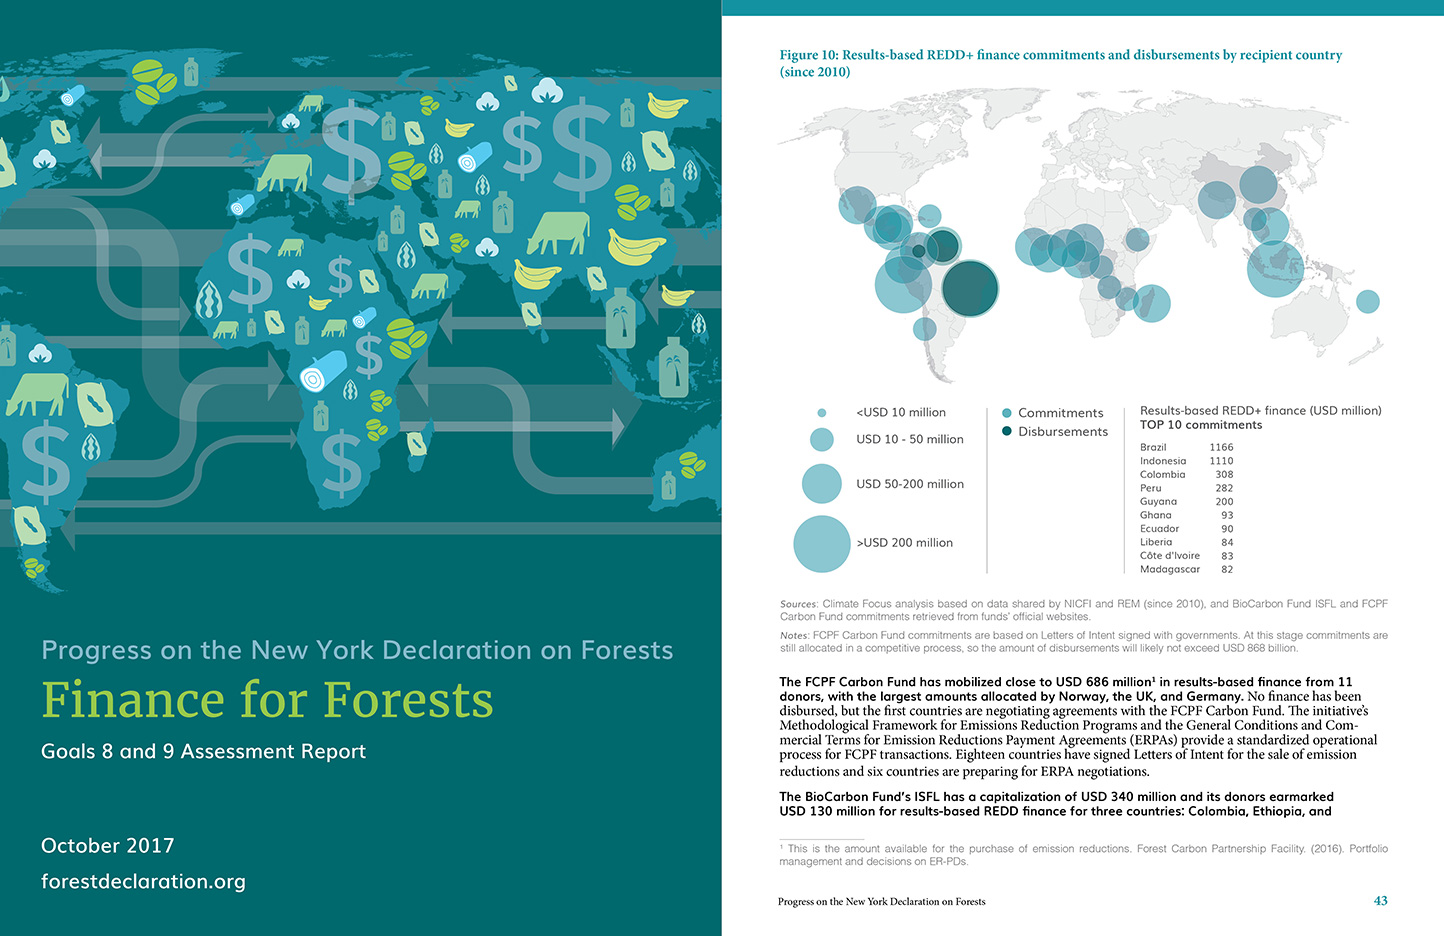 Progress on the New York Declaration on Forests: Goals 8 and 9 Assesment Report